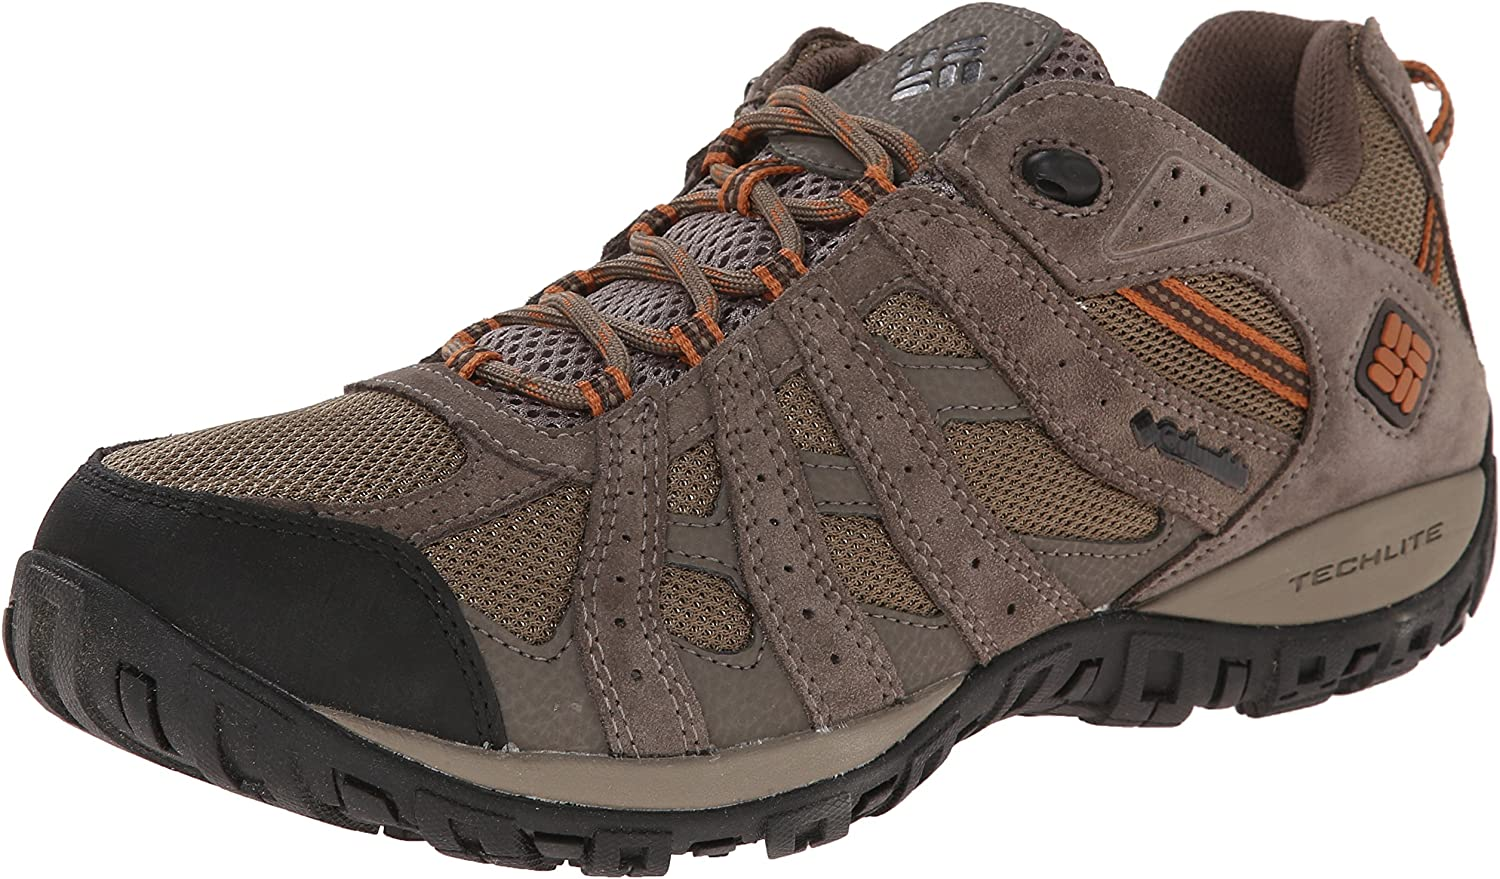 Columbia Men's Redmond Waterproof Wide Hiking shoes